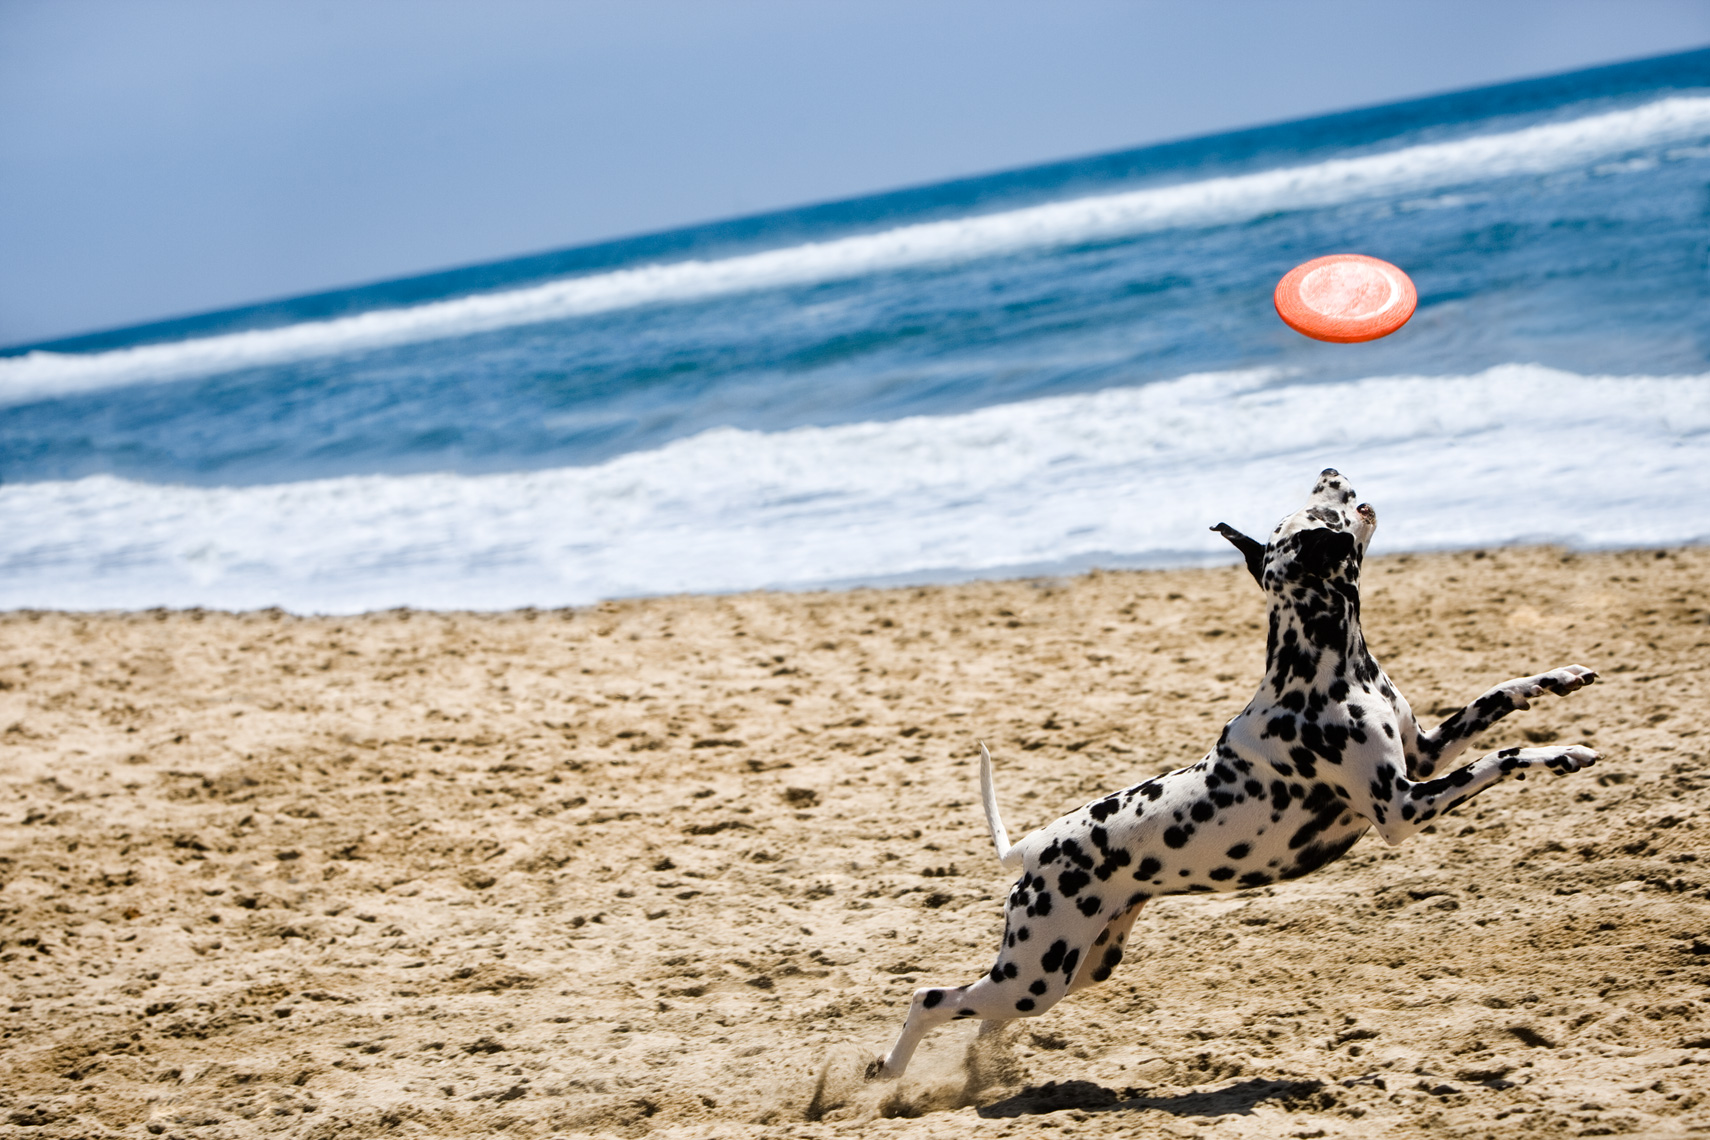 Los Angeles Dog Photography, Michael Brian, pet, cat, Dalmatian chasing frisbee, Huntington Beach Dog Beach, California